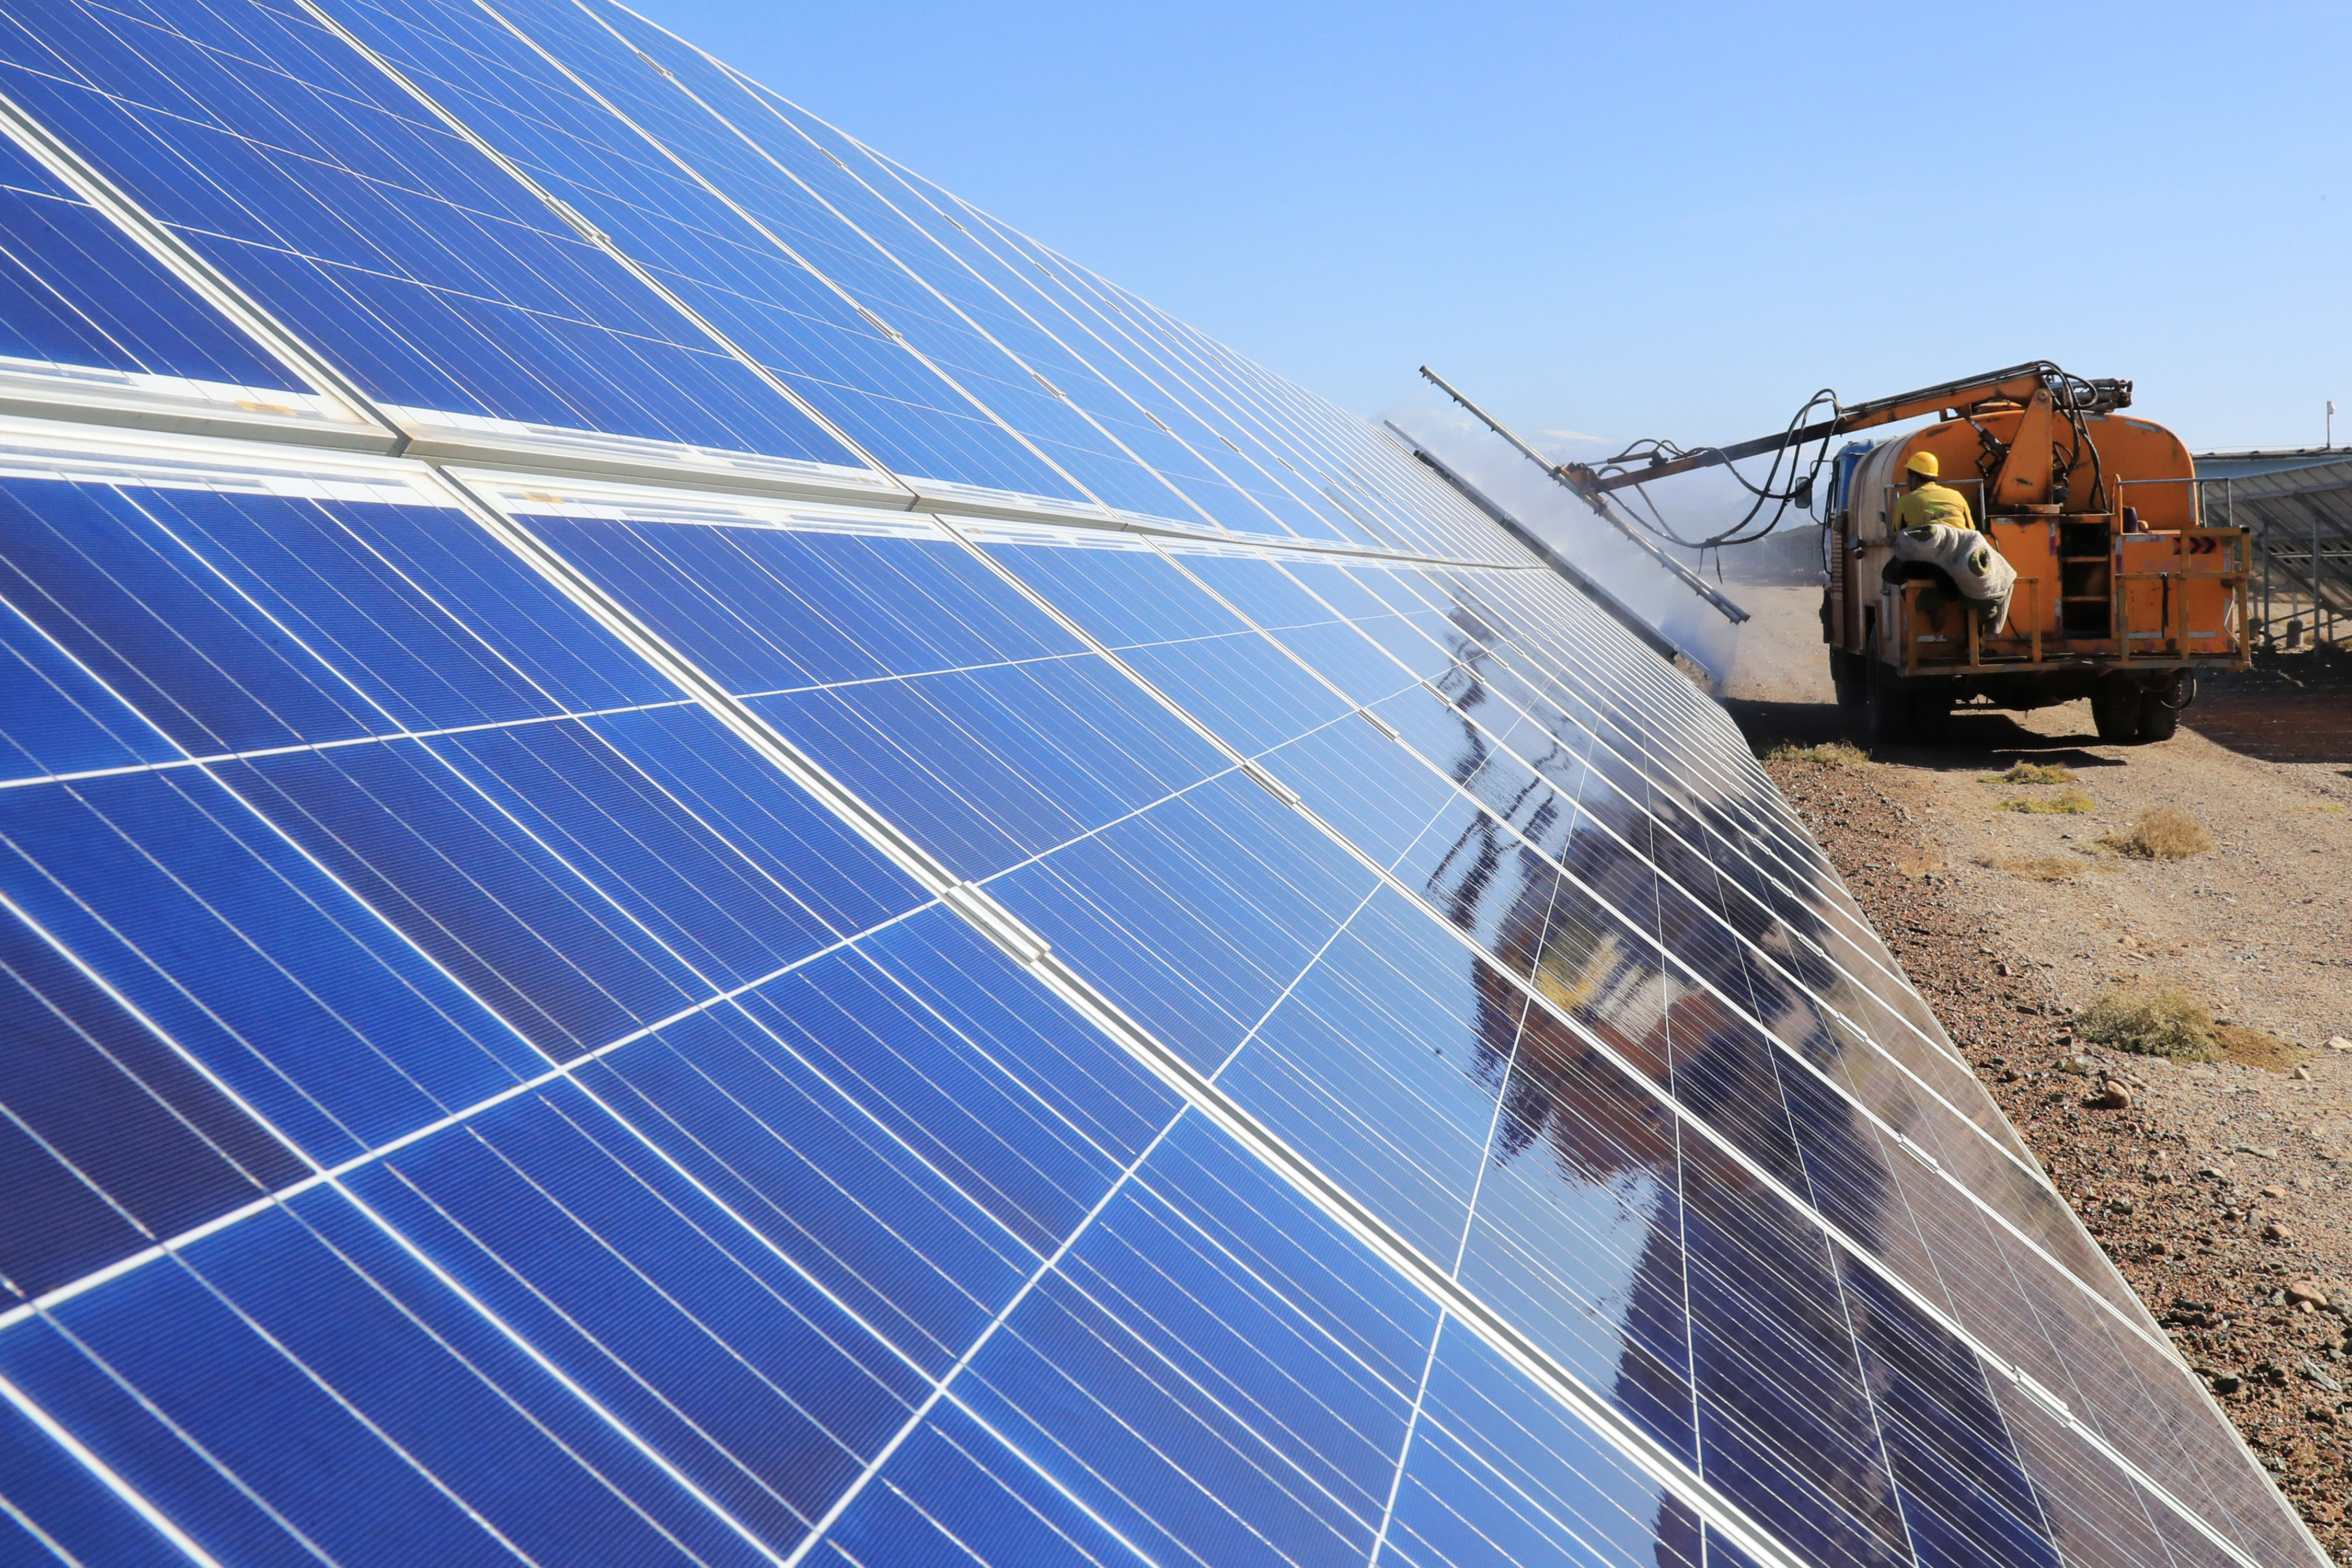 New Allegations Made Of Forced Labor At Chinese Solar Manufacturers Voice Of America English